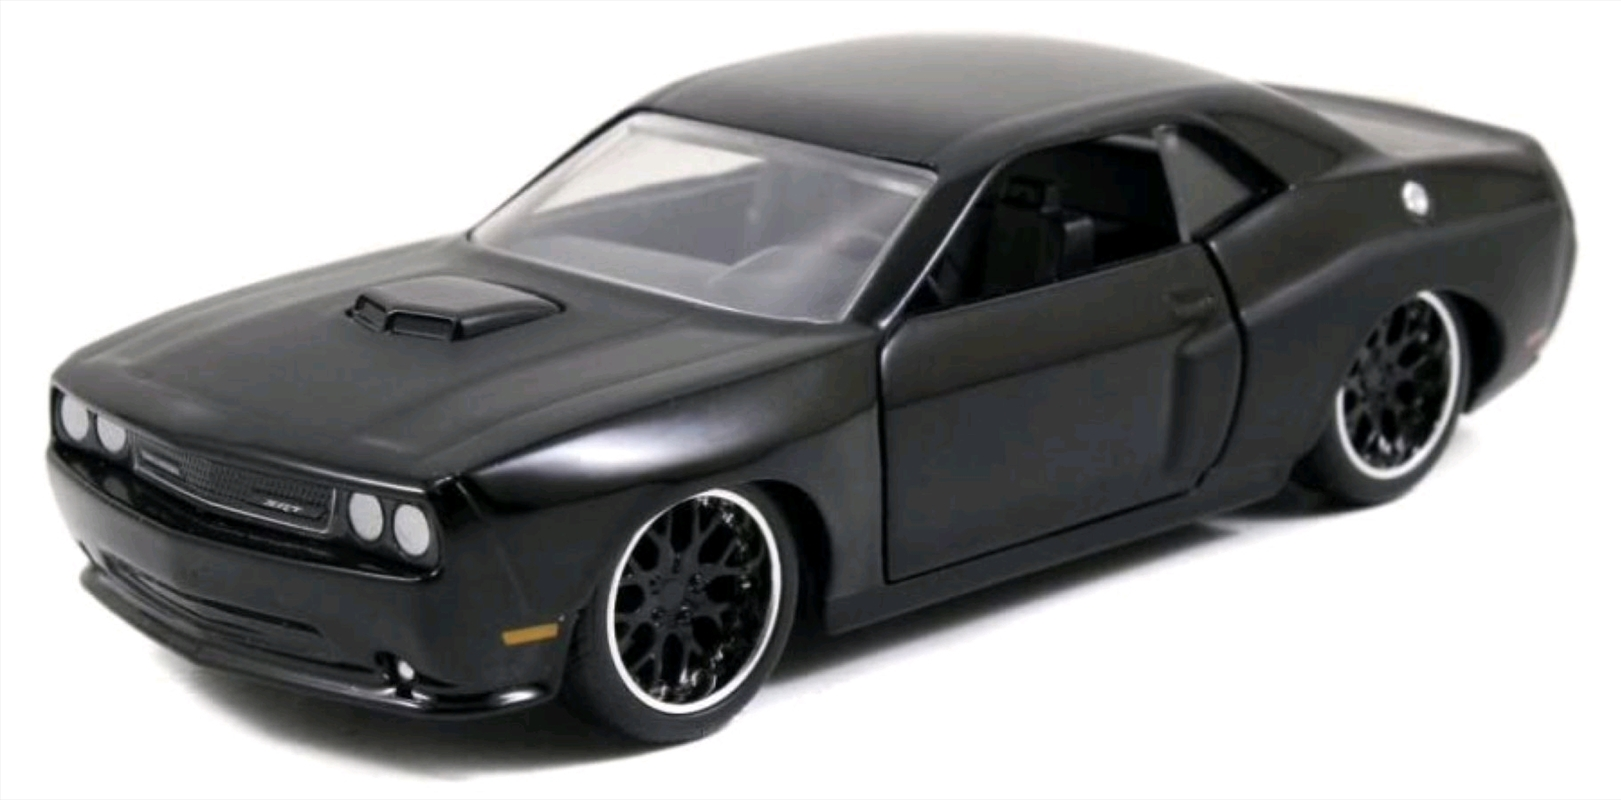 Fast and Furious - 2012 Dodge Challenger SRT8 1:32 Scale Hollywood Ride | Merchandise